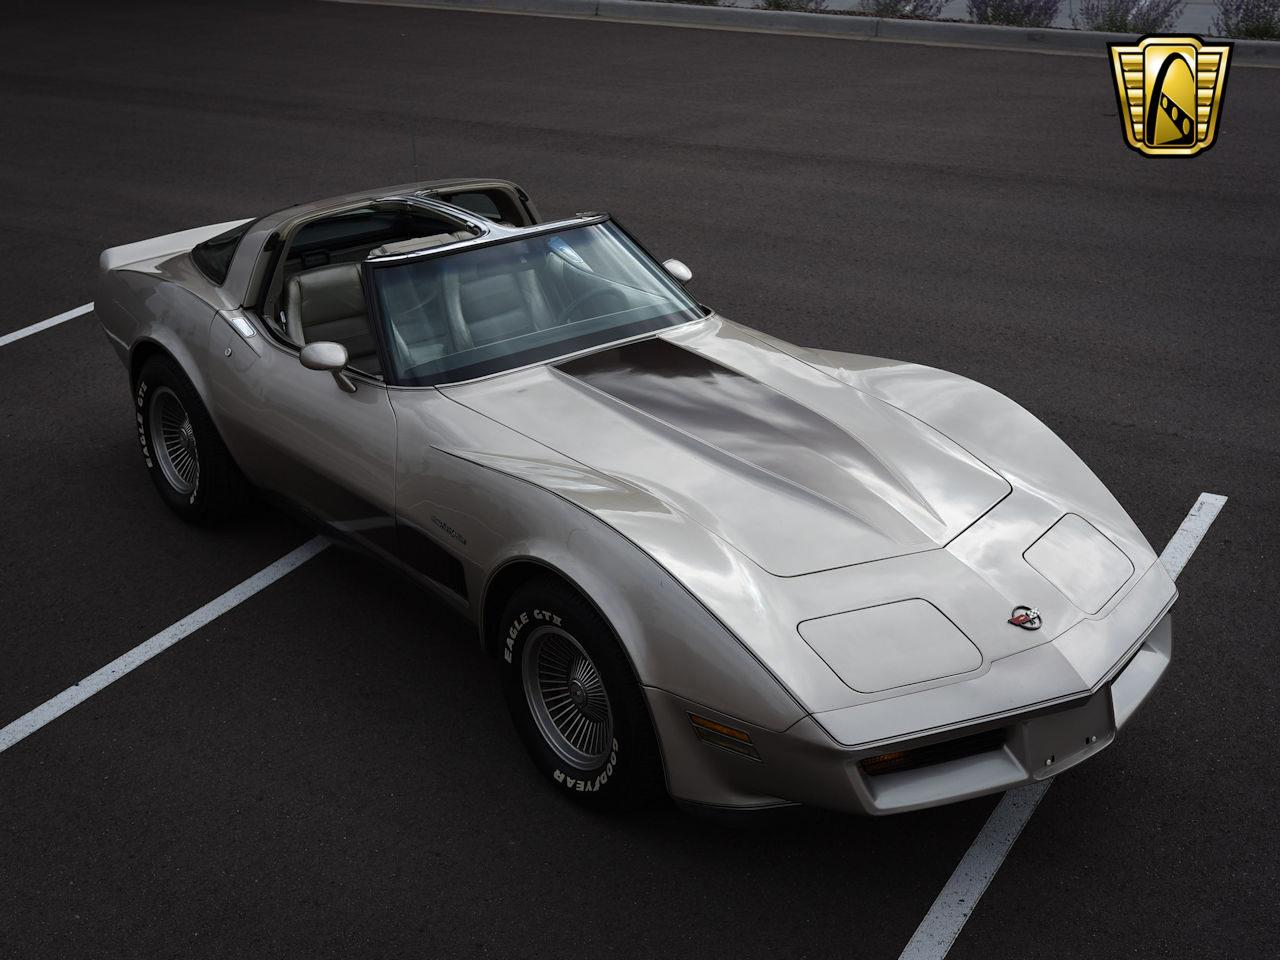 Large Picture of '82 Chevrolet Corvette located in Illinois - $18,995.00 - LNRR